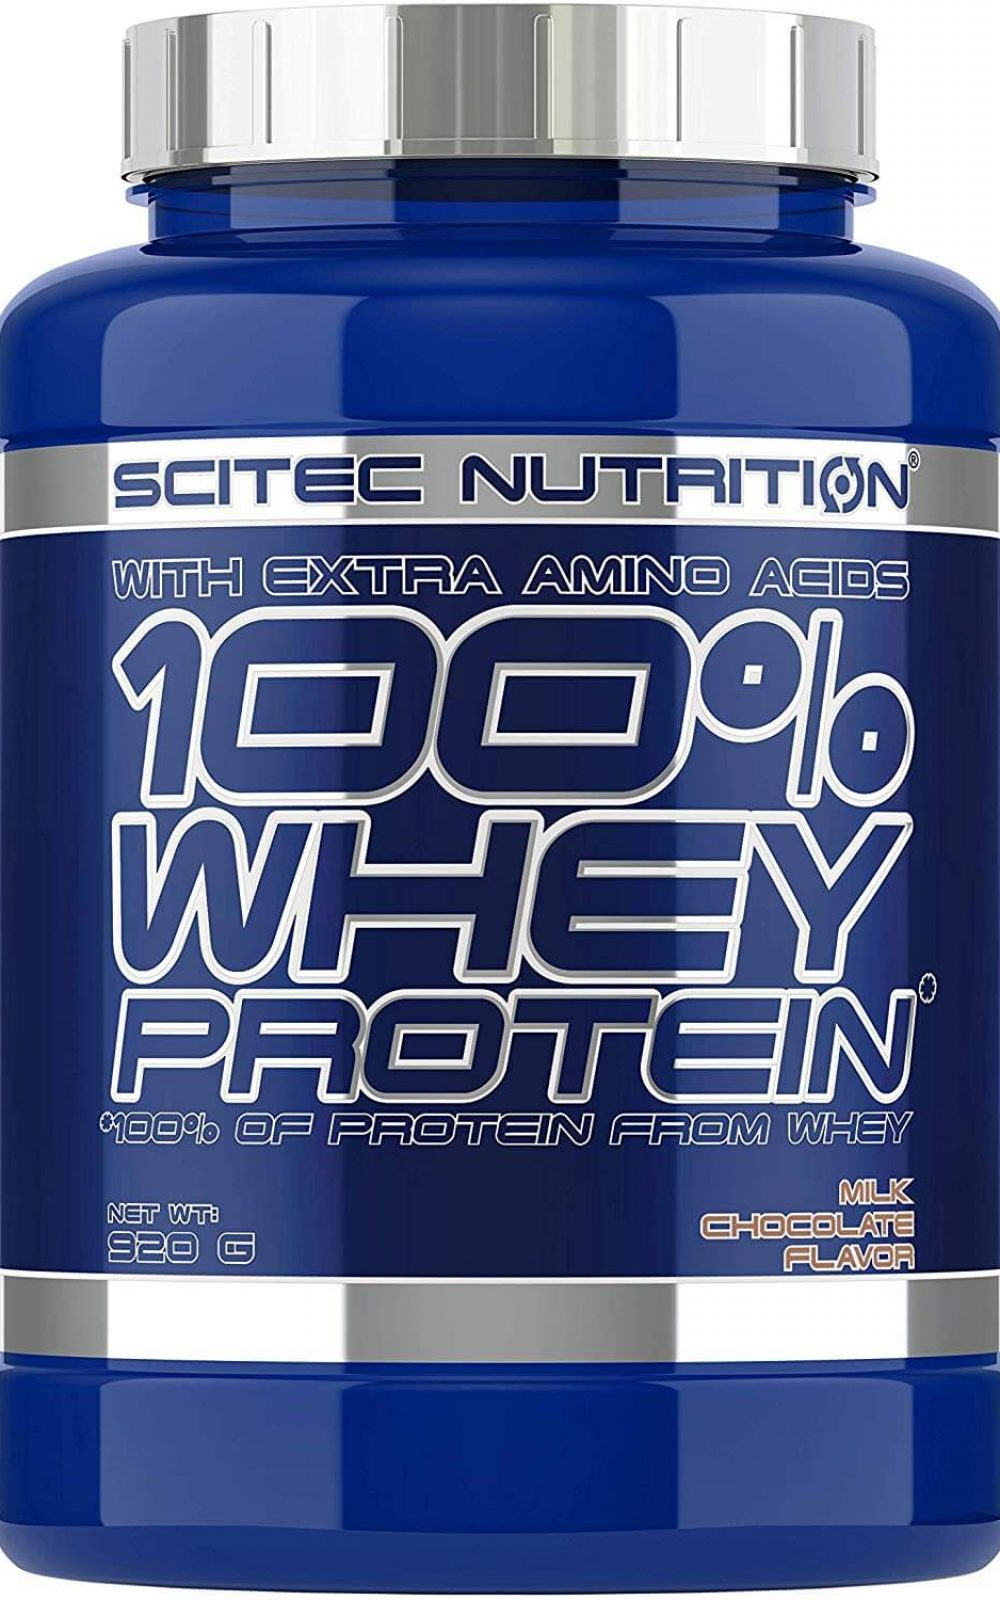 Scitec Nutrition Whey Protein Proteína, Chocolate con Leche - 920 g